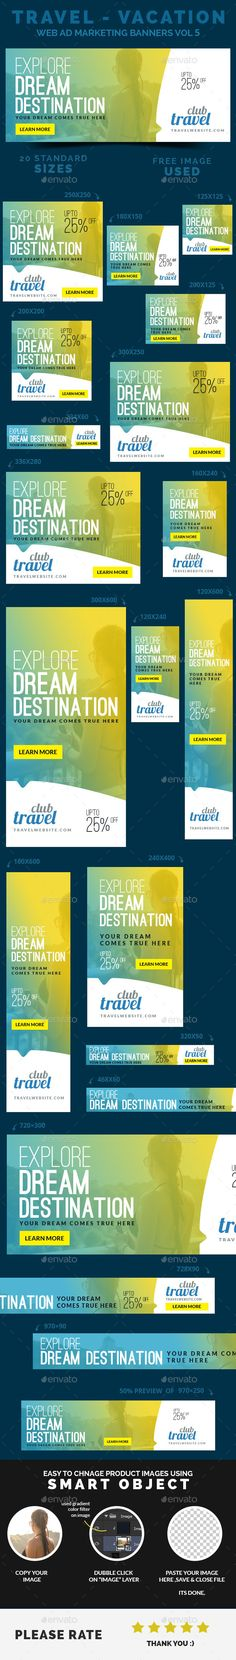 Travel - Vacation Web Ad Marketing Banners Template PSD | Buy and Download: http://graphicriver.net/item/travel-vacation-web-ad-marketing-banners-vol-5/8895973?WT.ac=category_thumb&WT.z_author=webduck&ref=ksioks